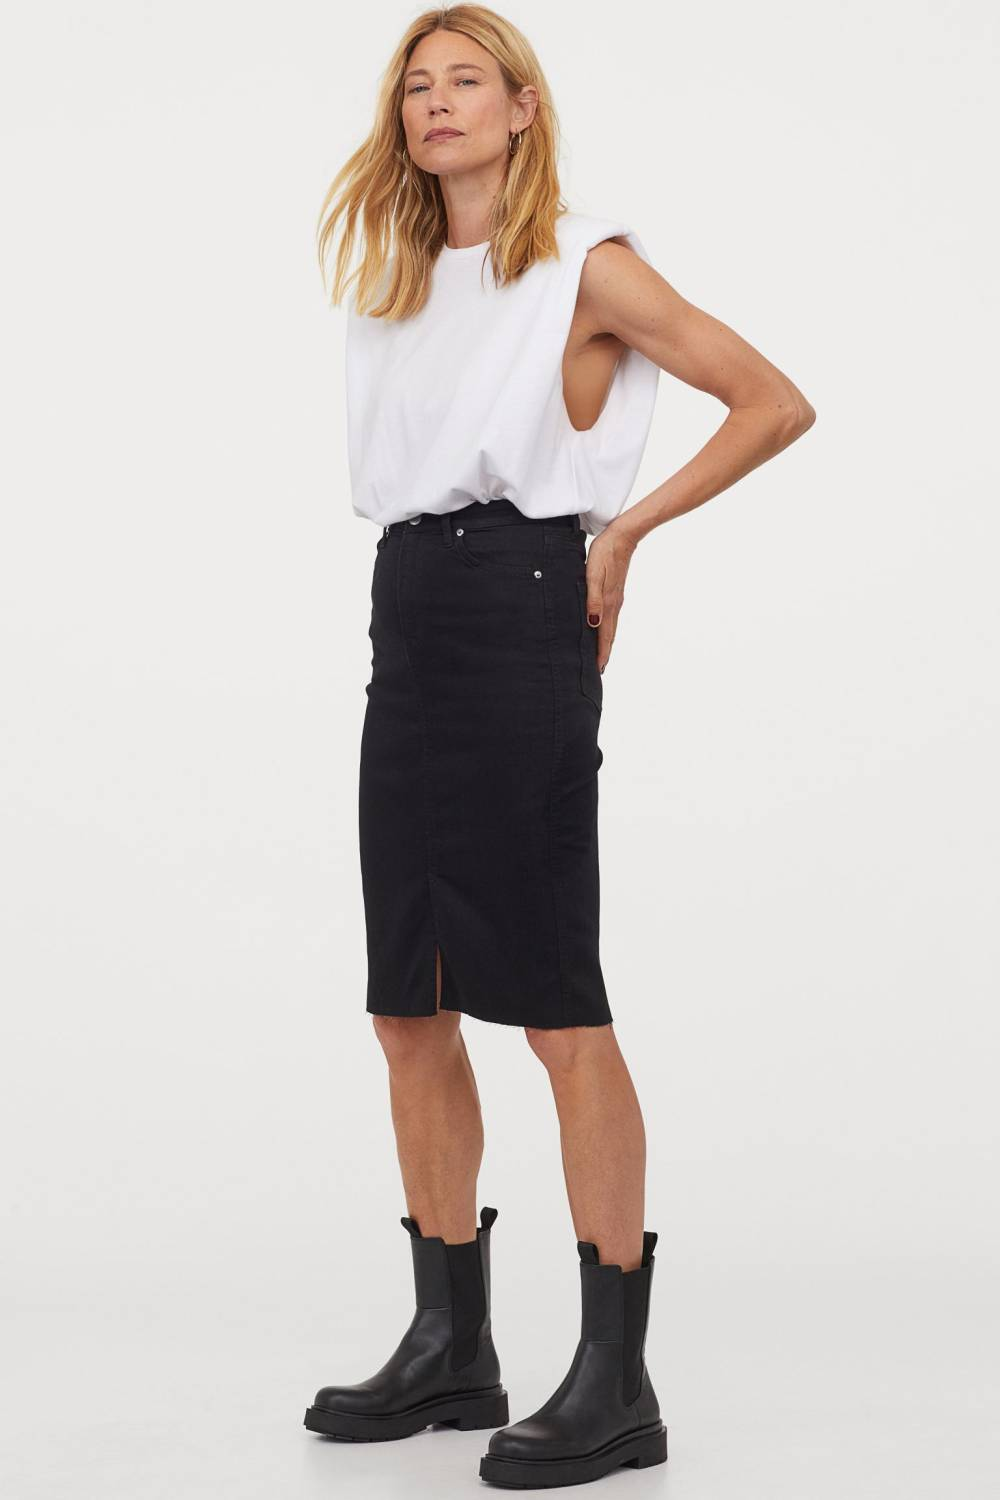 h&m recycled cotton pencil skirt